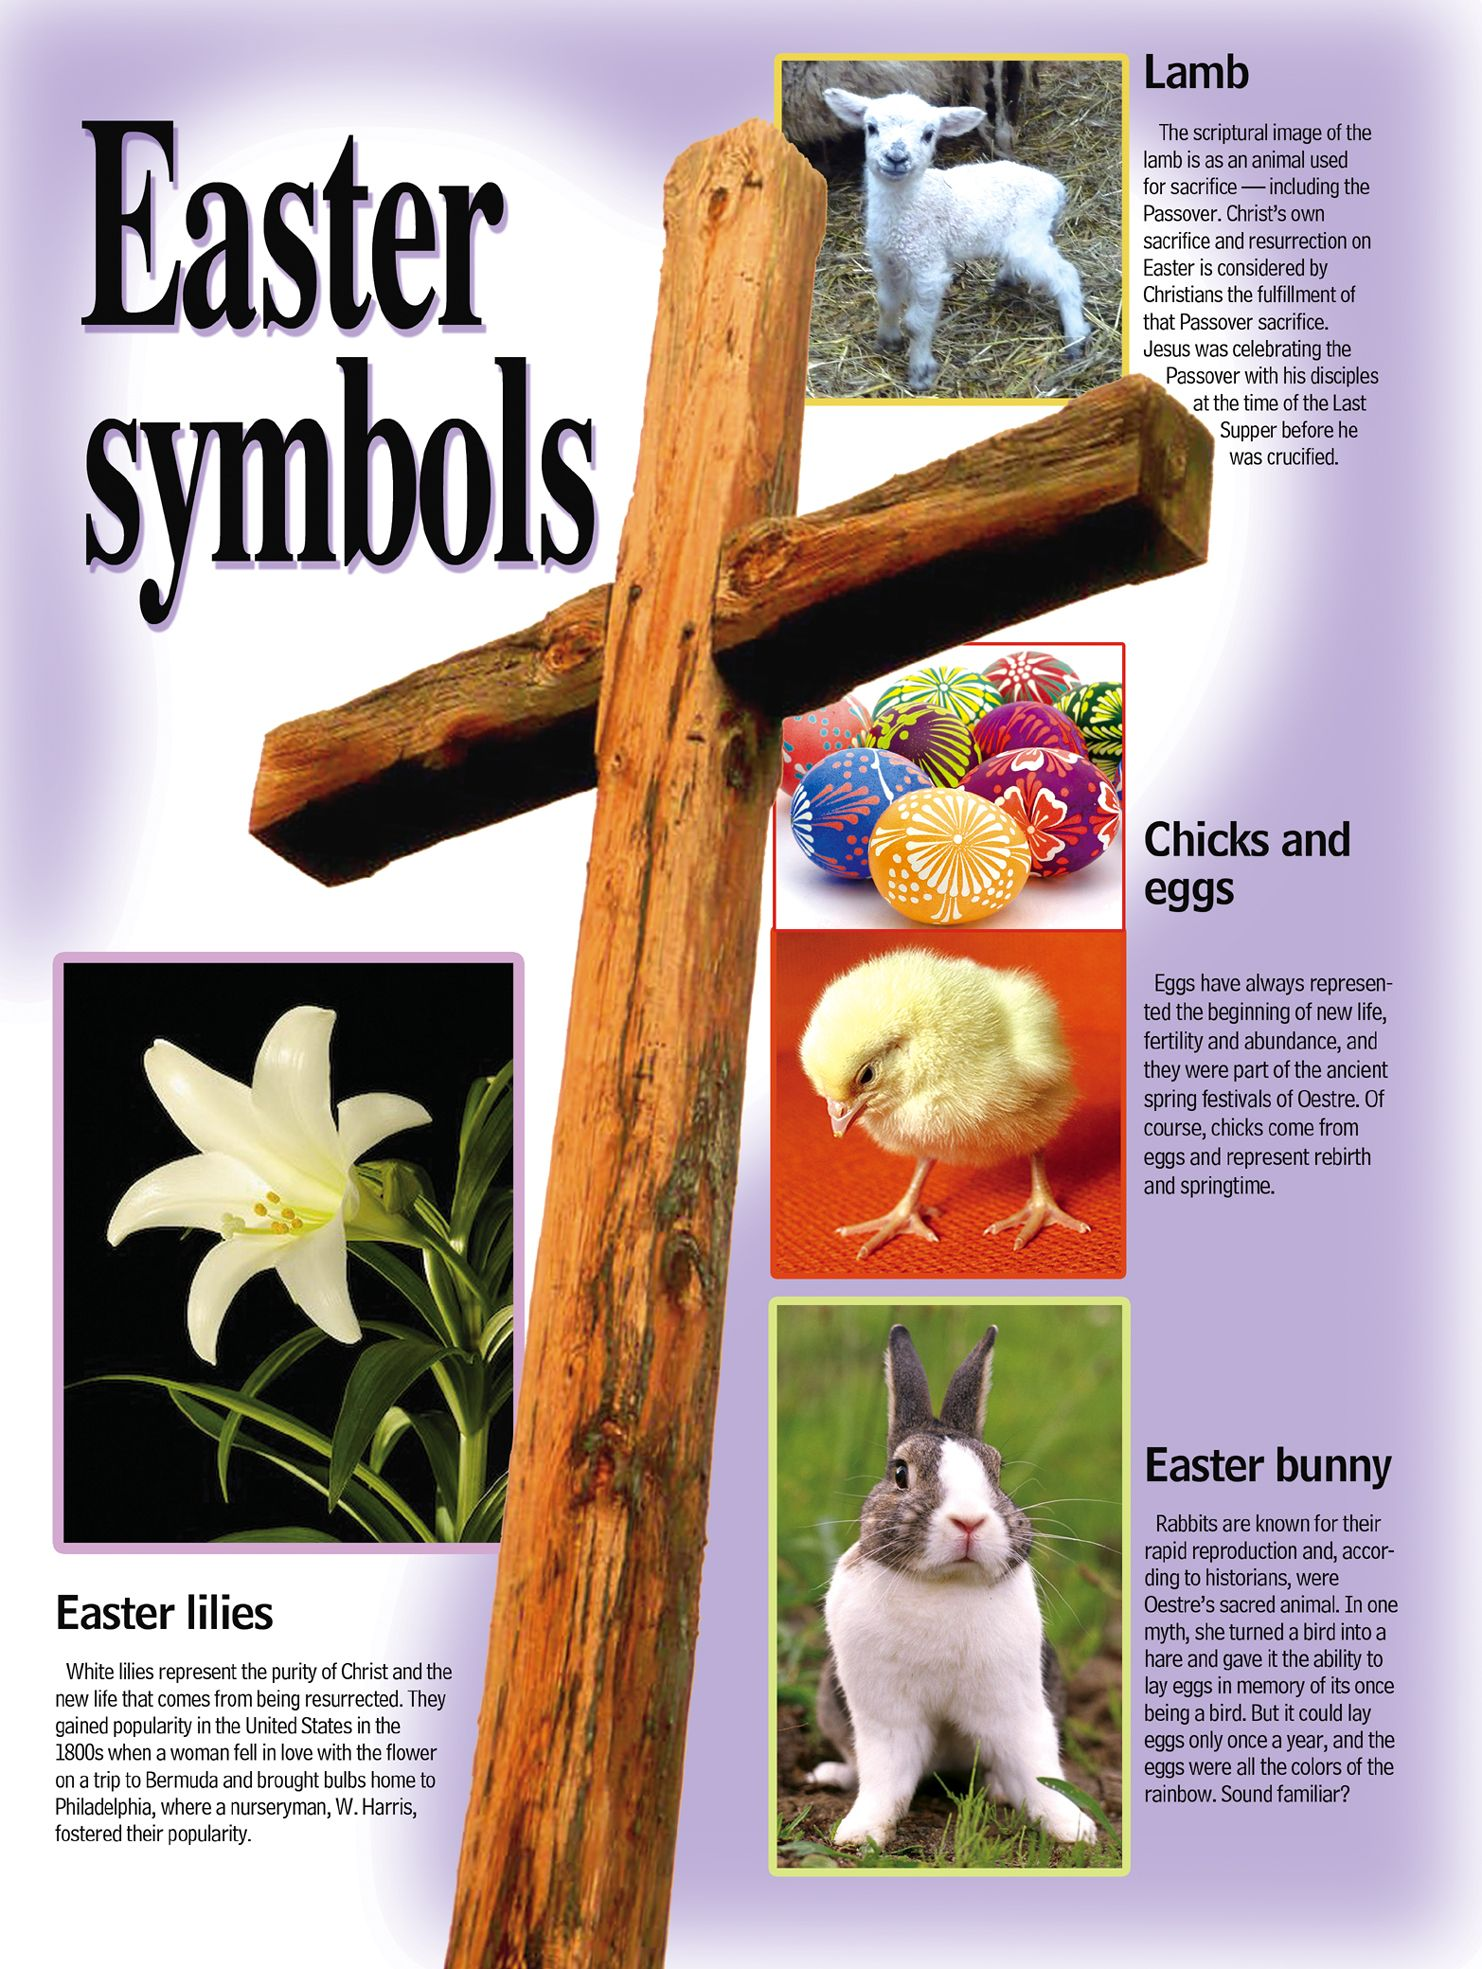 Pagan Easter Traditions Easter Symbols Bunny Eggs And More